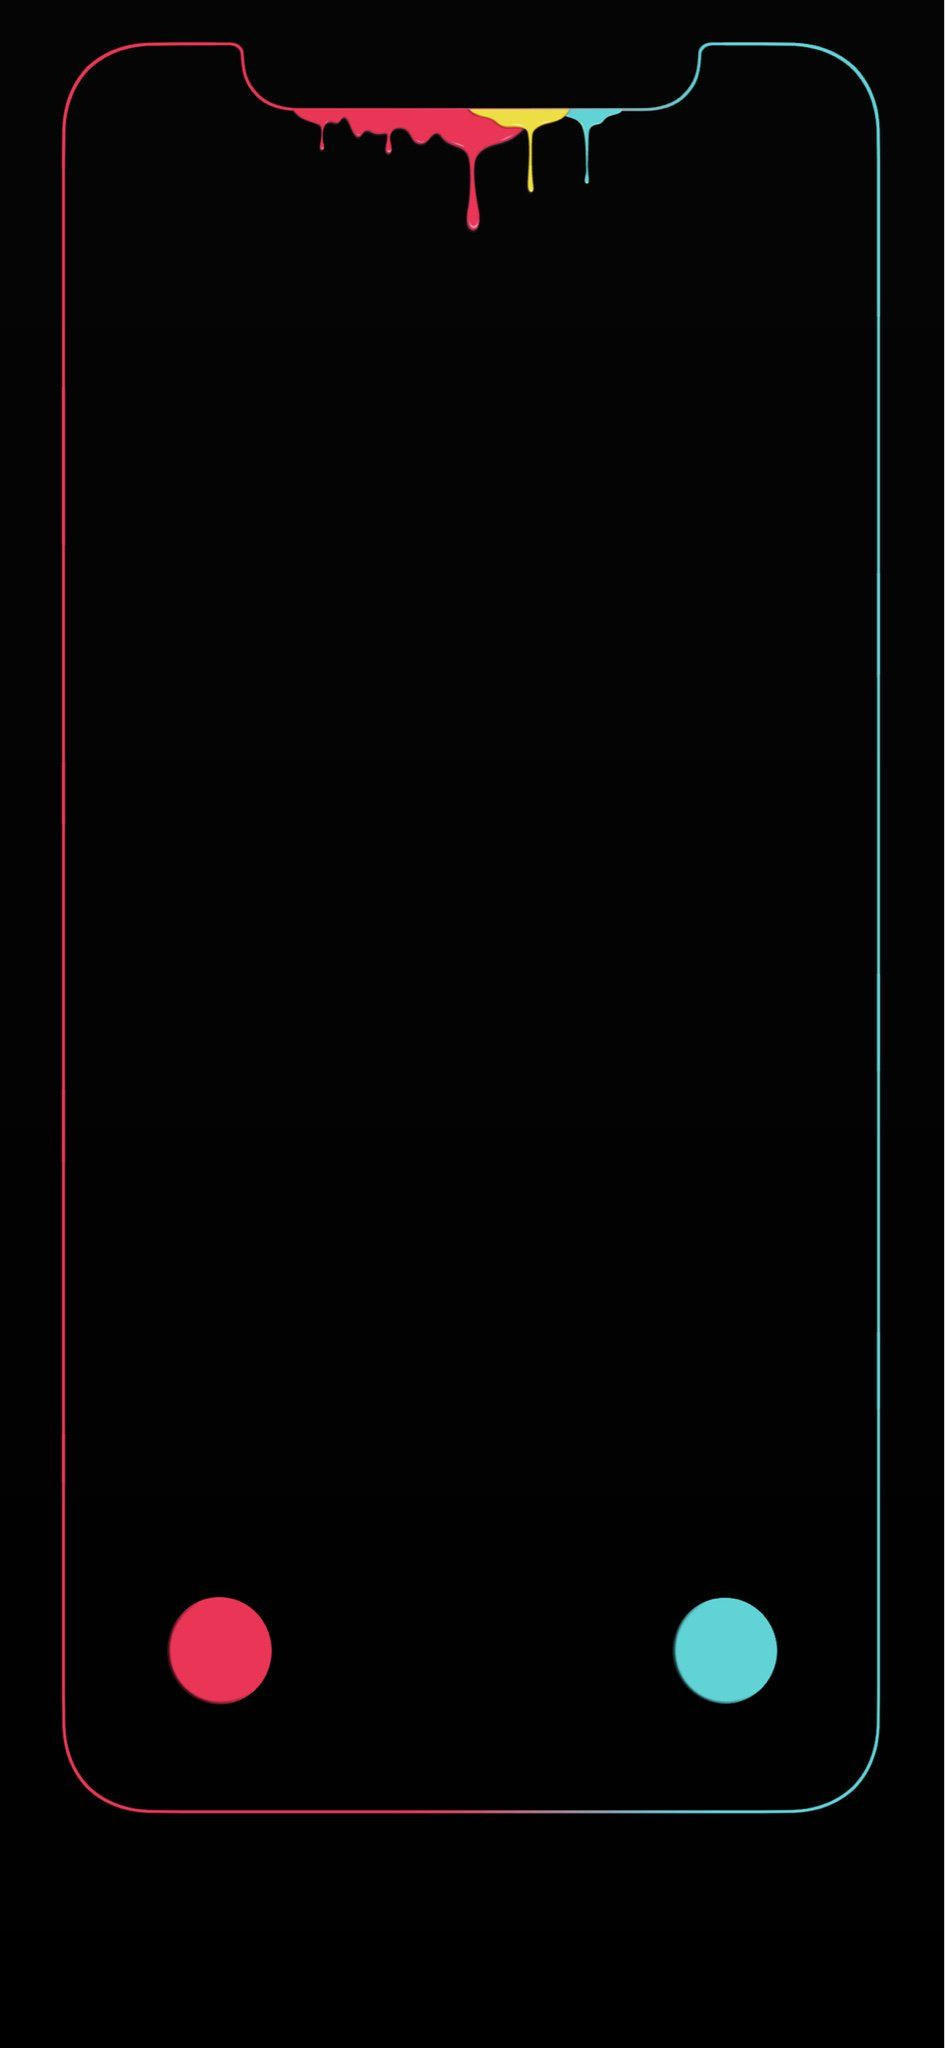 The iPhone X/Xs Wallpaper Thread - Page 53 - iPhone, iPad, iPod Forums at iMore.com from forums.imore.com